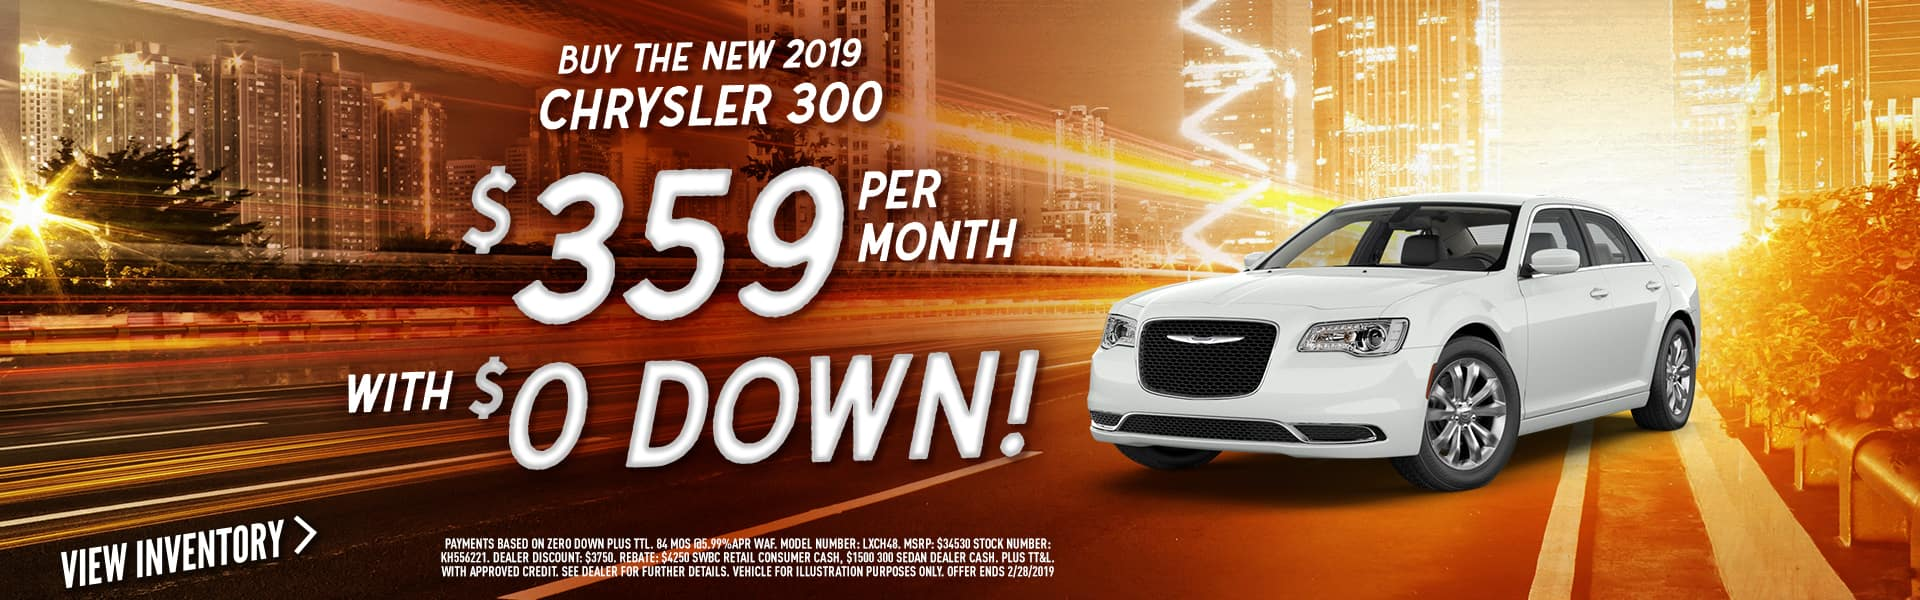 2019-chrysler-300-beaumont-tx